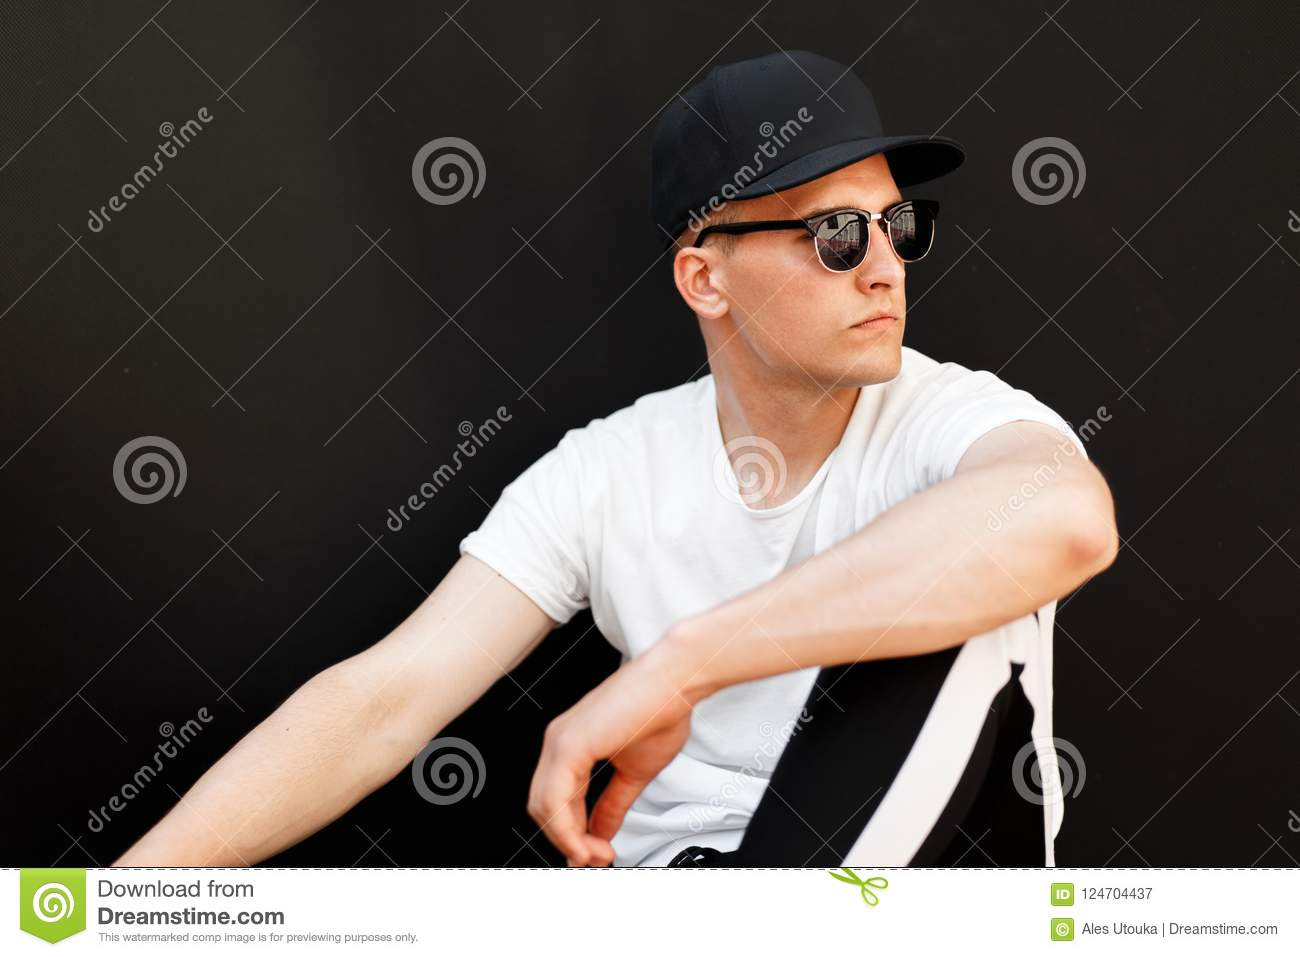 a94d8eb94011 Fashionable handsome man with sunglasses and a stylish black cap in a white  T-shirt sits on a black background